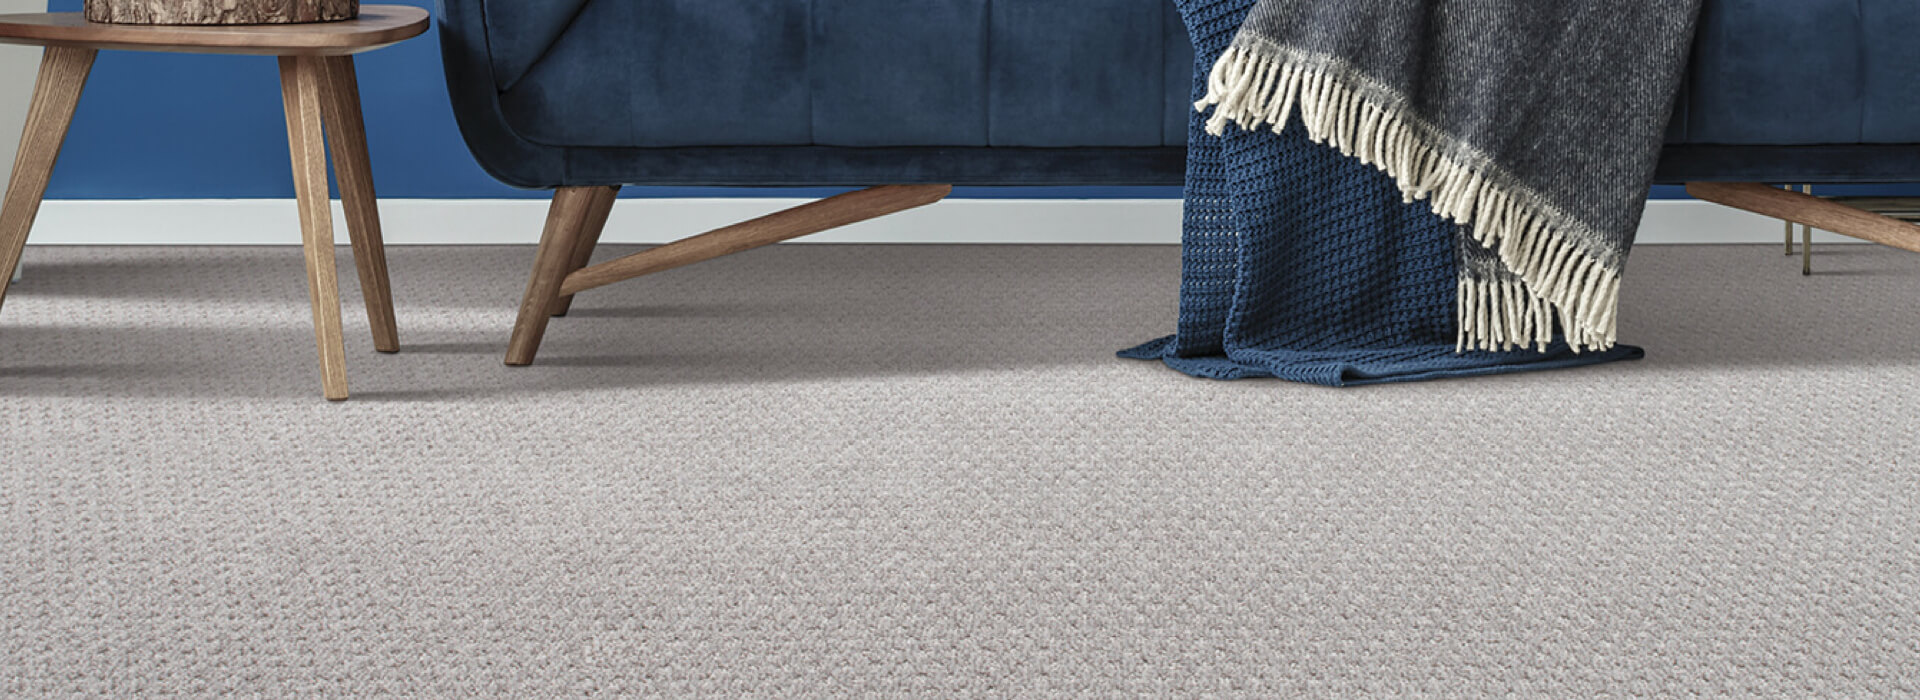 Choosing the Right Carpet Fiber